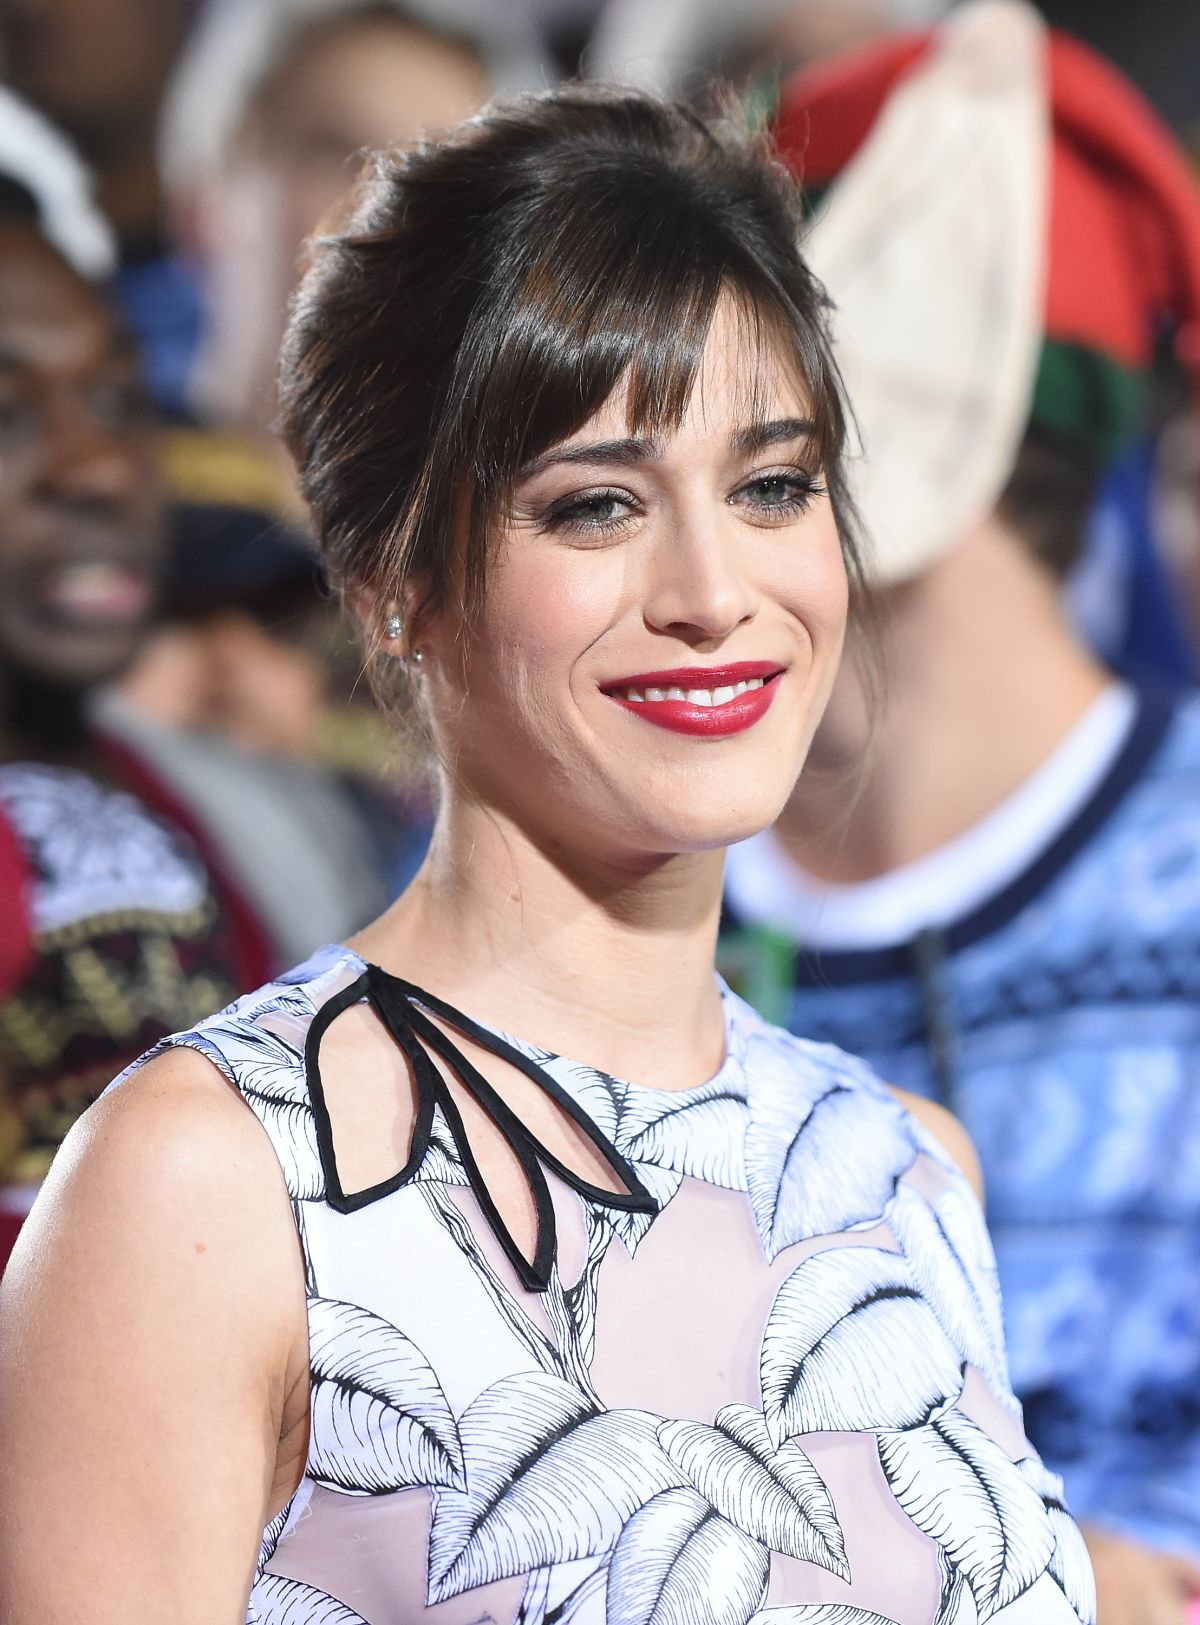 LIZZY CAPLAN at The Night Before Premiere in Los Angeles 11/18/2015